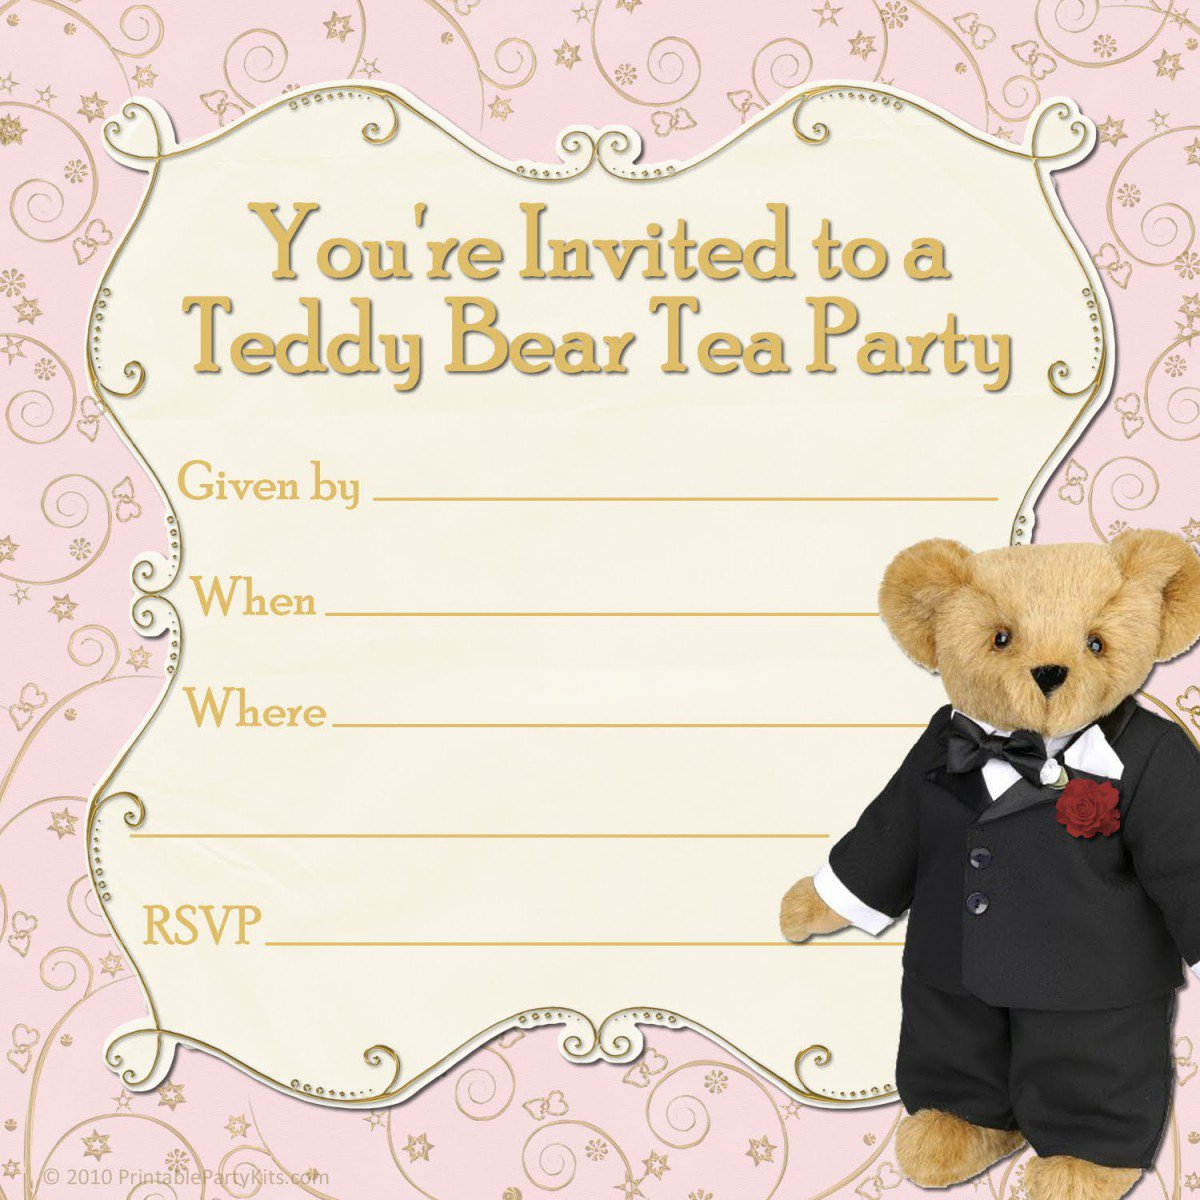 Printable Retirement Party Invitations Ideas Free 2017